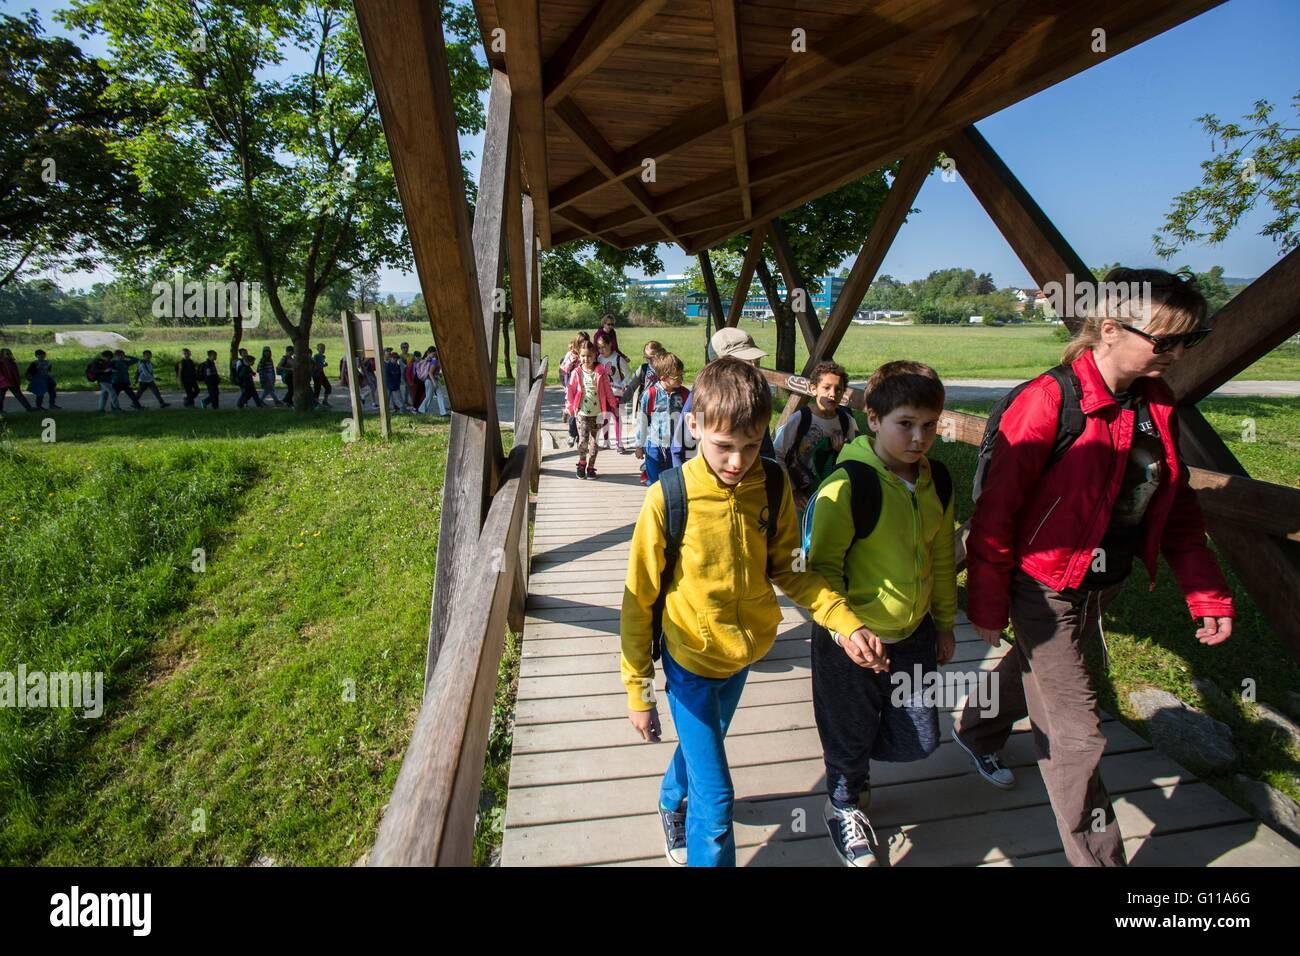 Ljubljana, Slovenia. 6th May, 2016. Students cross a bridge during the 60th annual March Along The Wire in Ljubljana, - Stock Image